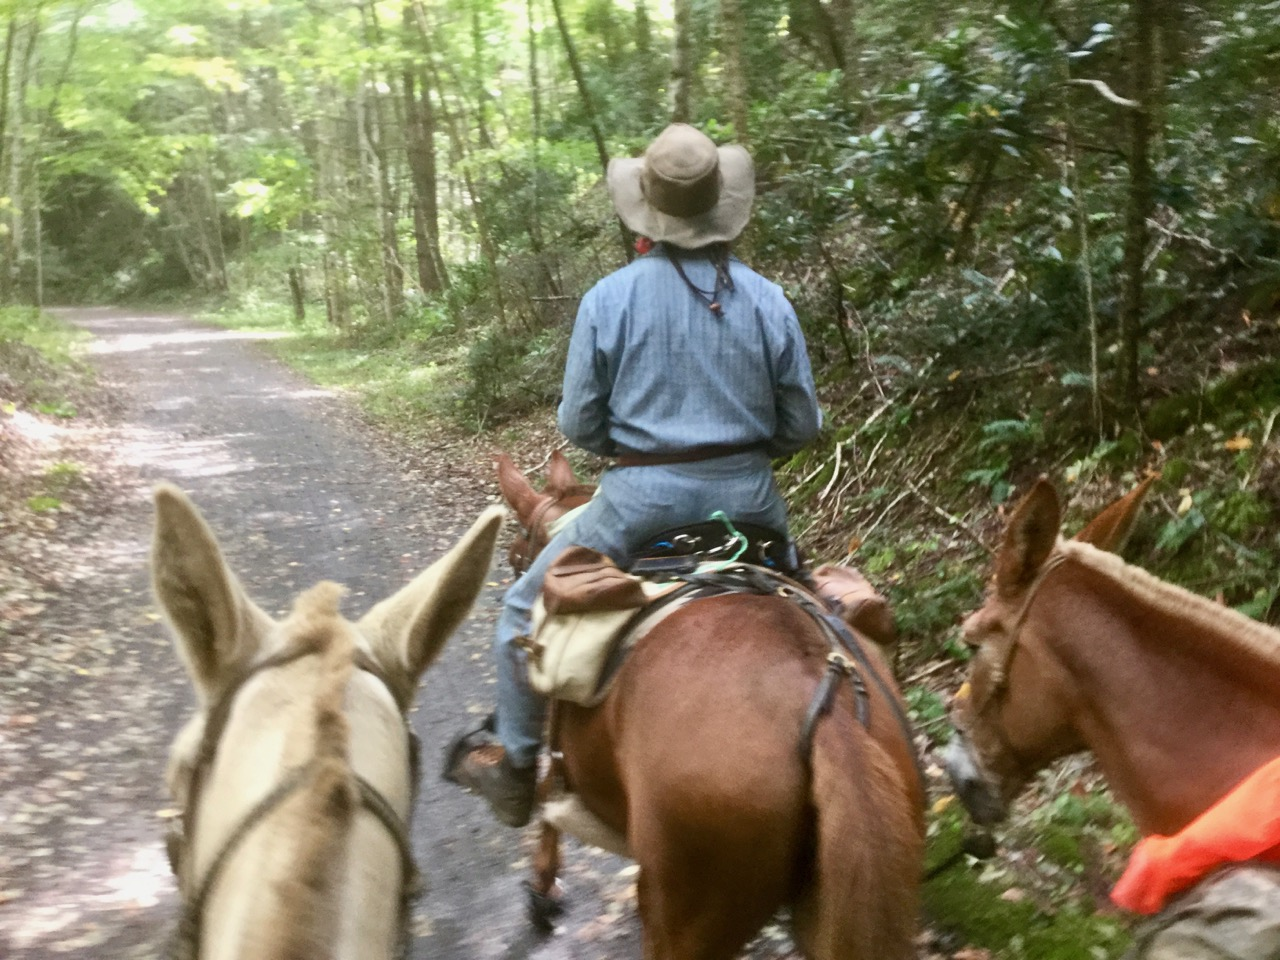 Bernie Harberts, Bernie Harberts photo, Julie Carpenter, ride out the front gate, riverearth.com, mule, horse, trail ride, western North Carolina, packing, adventure, voyage, horse voyage, mule voyage, barefoot hoof trim, pack mule